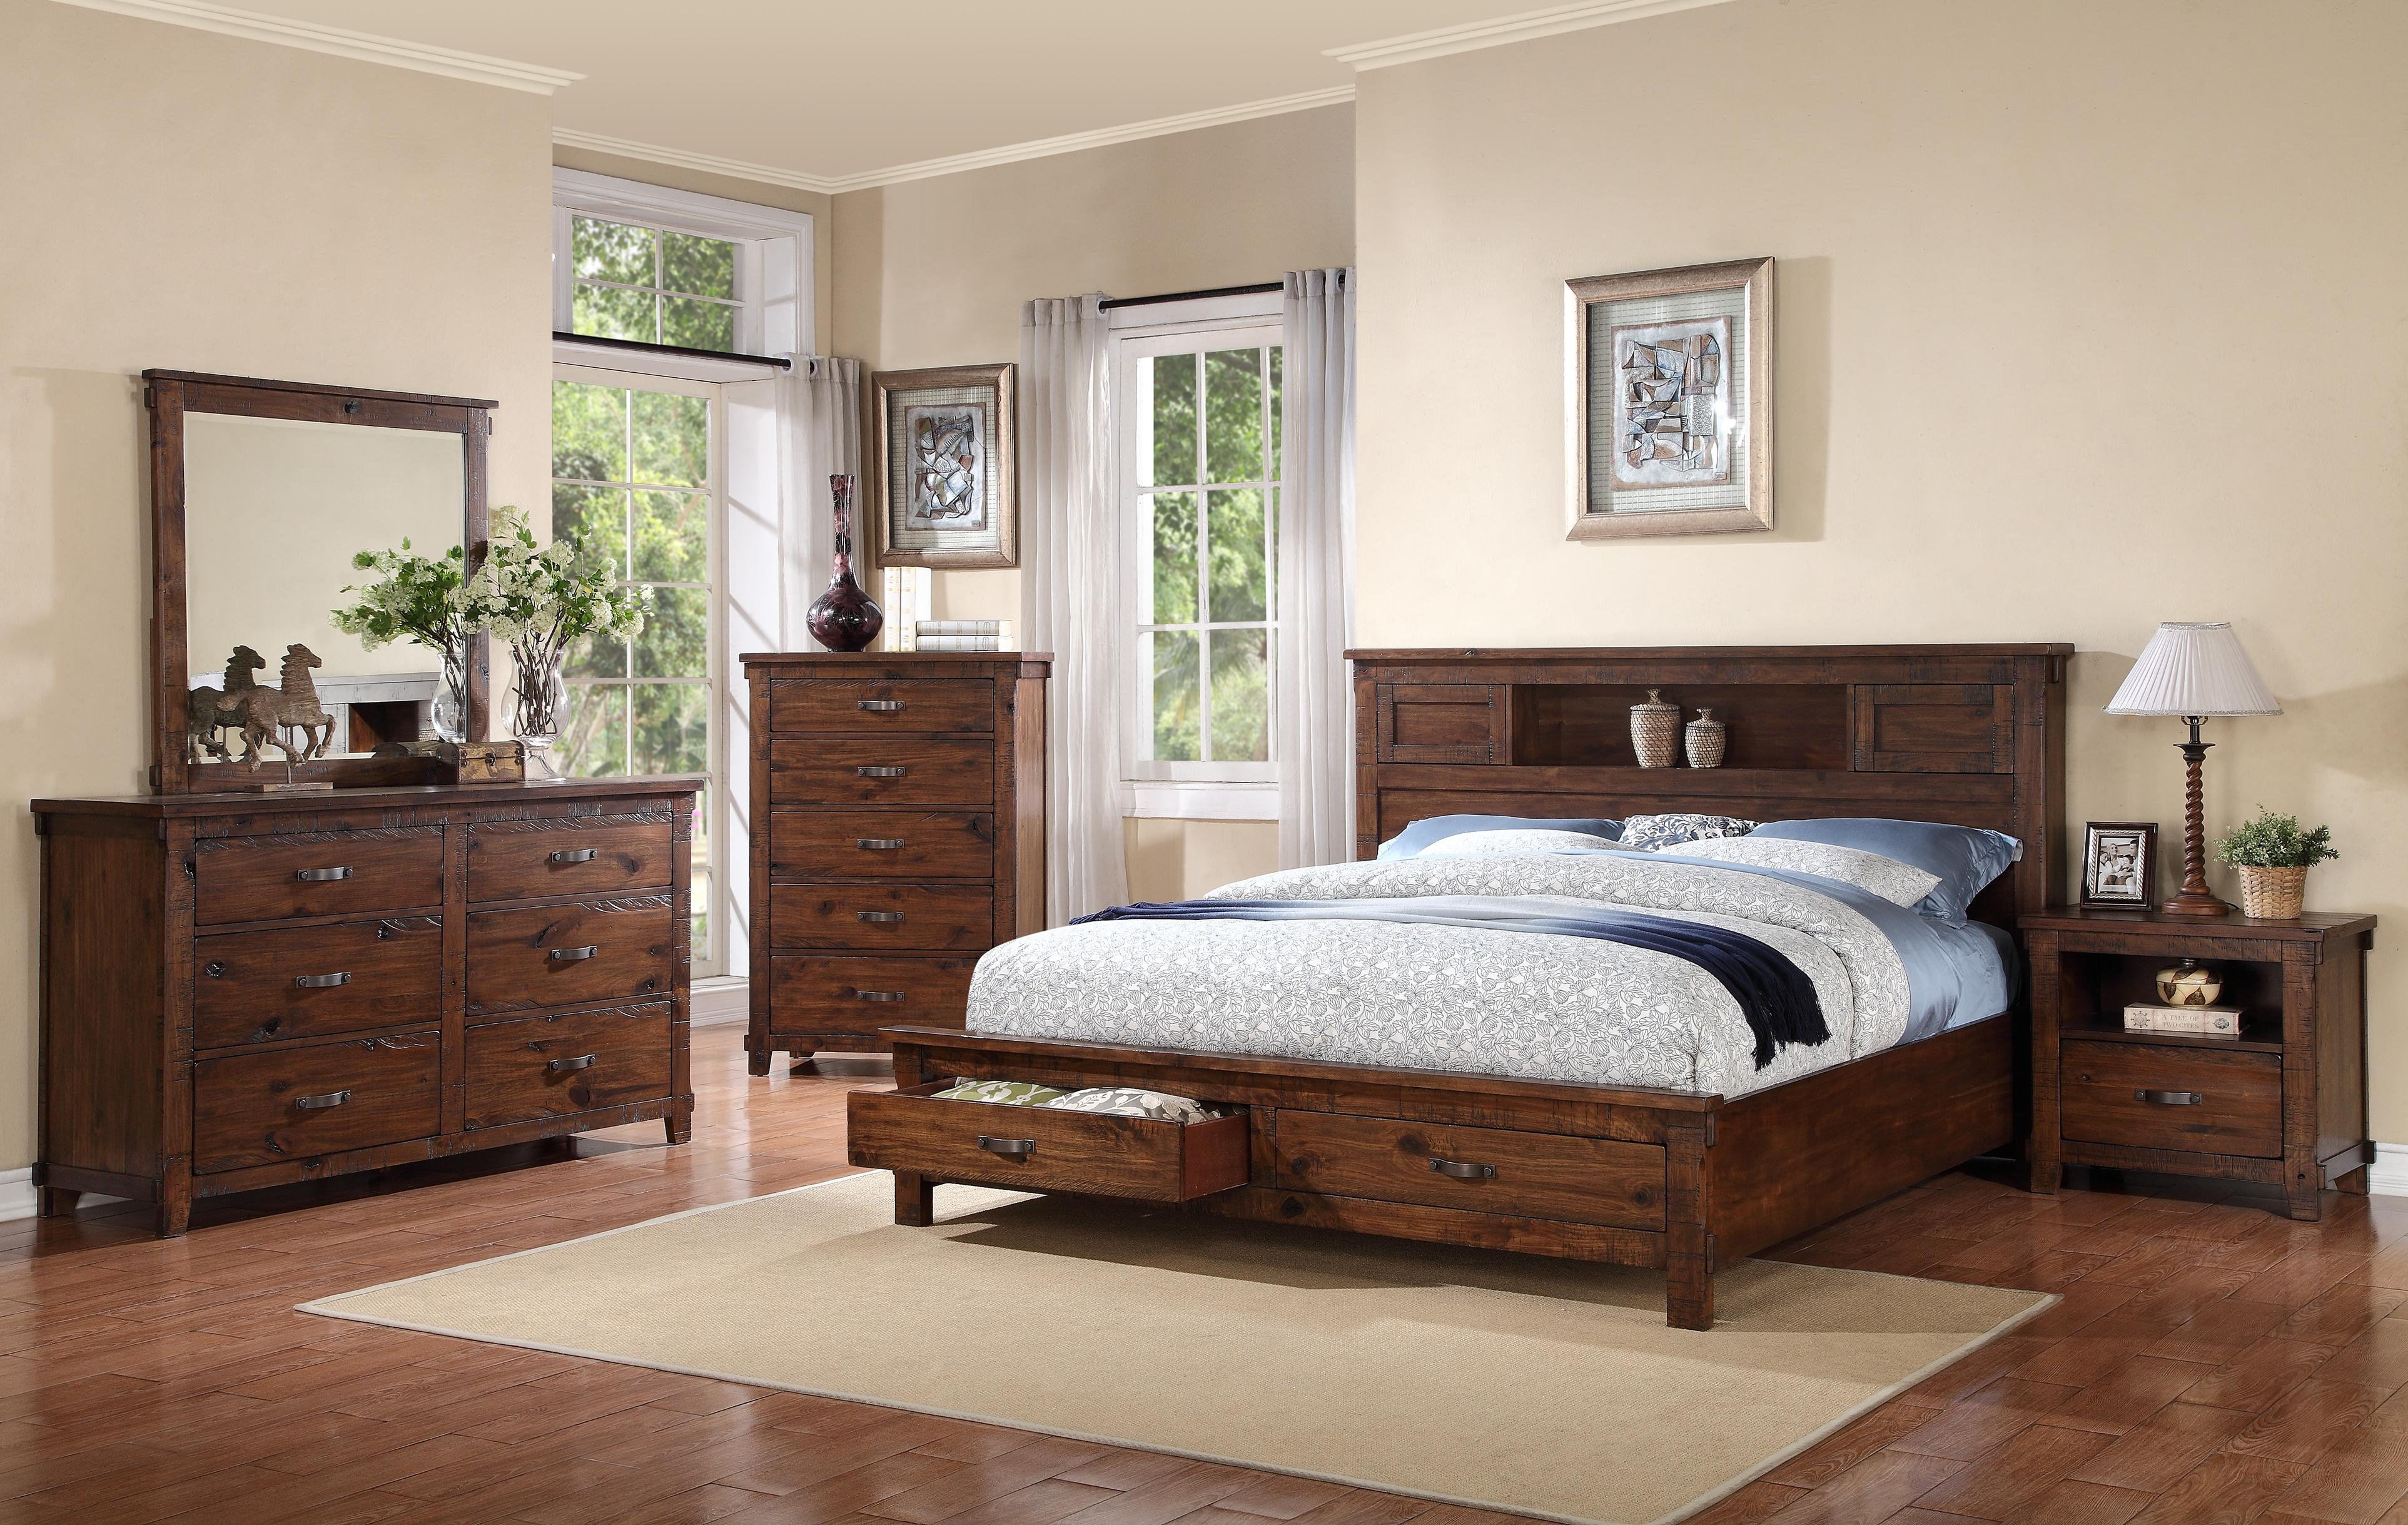 Legends Furniture Restoration King Bedroom Group - Item Number: ZRST K Bedroom Group 2